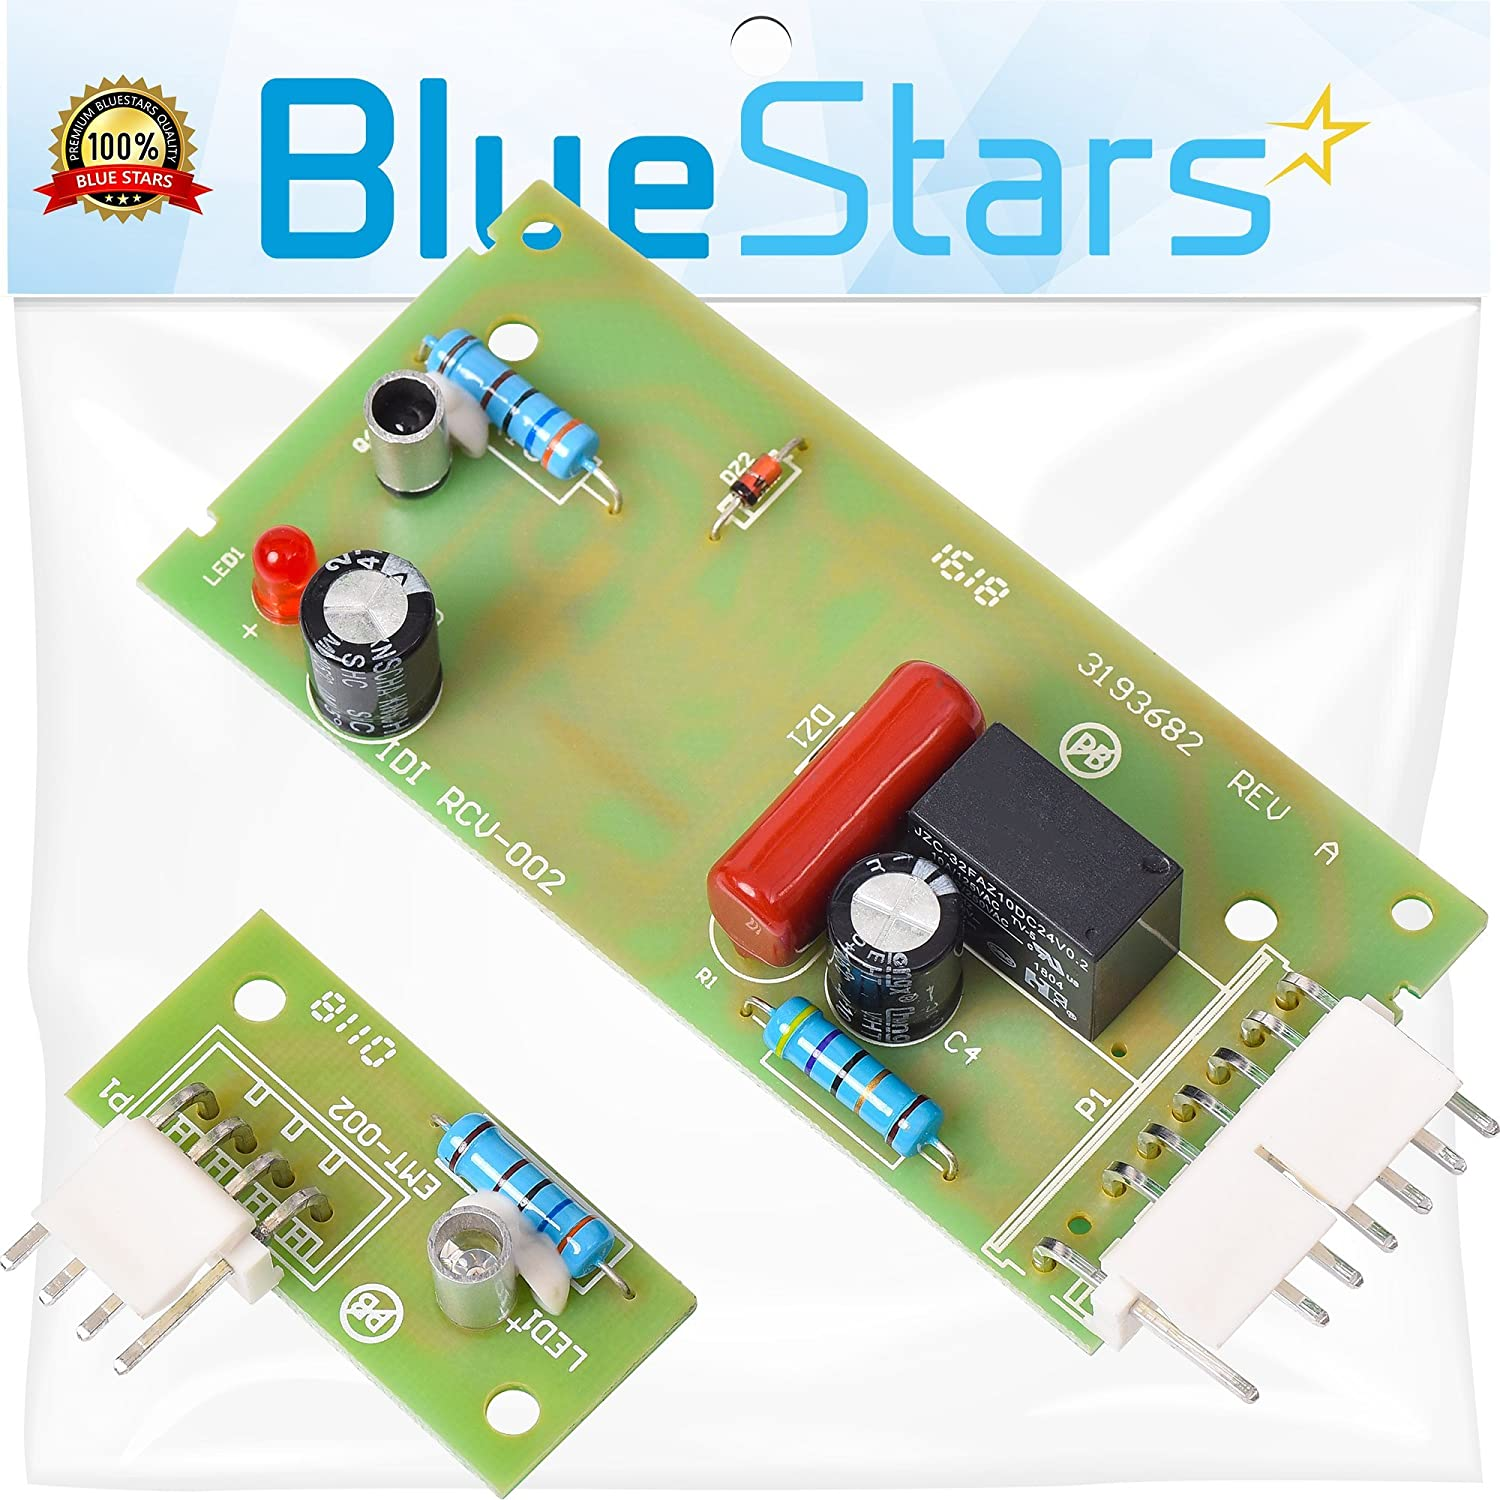 Ultra Durable 4389102 Control Board Kit Replacement by Blue Stars – Exact Fit For Whirlpool Refrigerators – Replaces 3193682 2255114 2198586 W10757851 AP5956767 W10193666